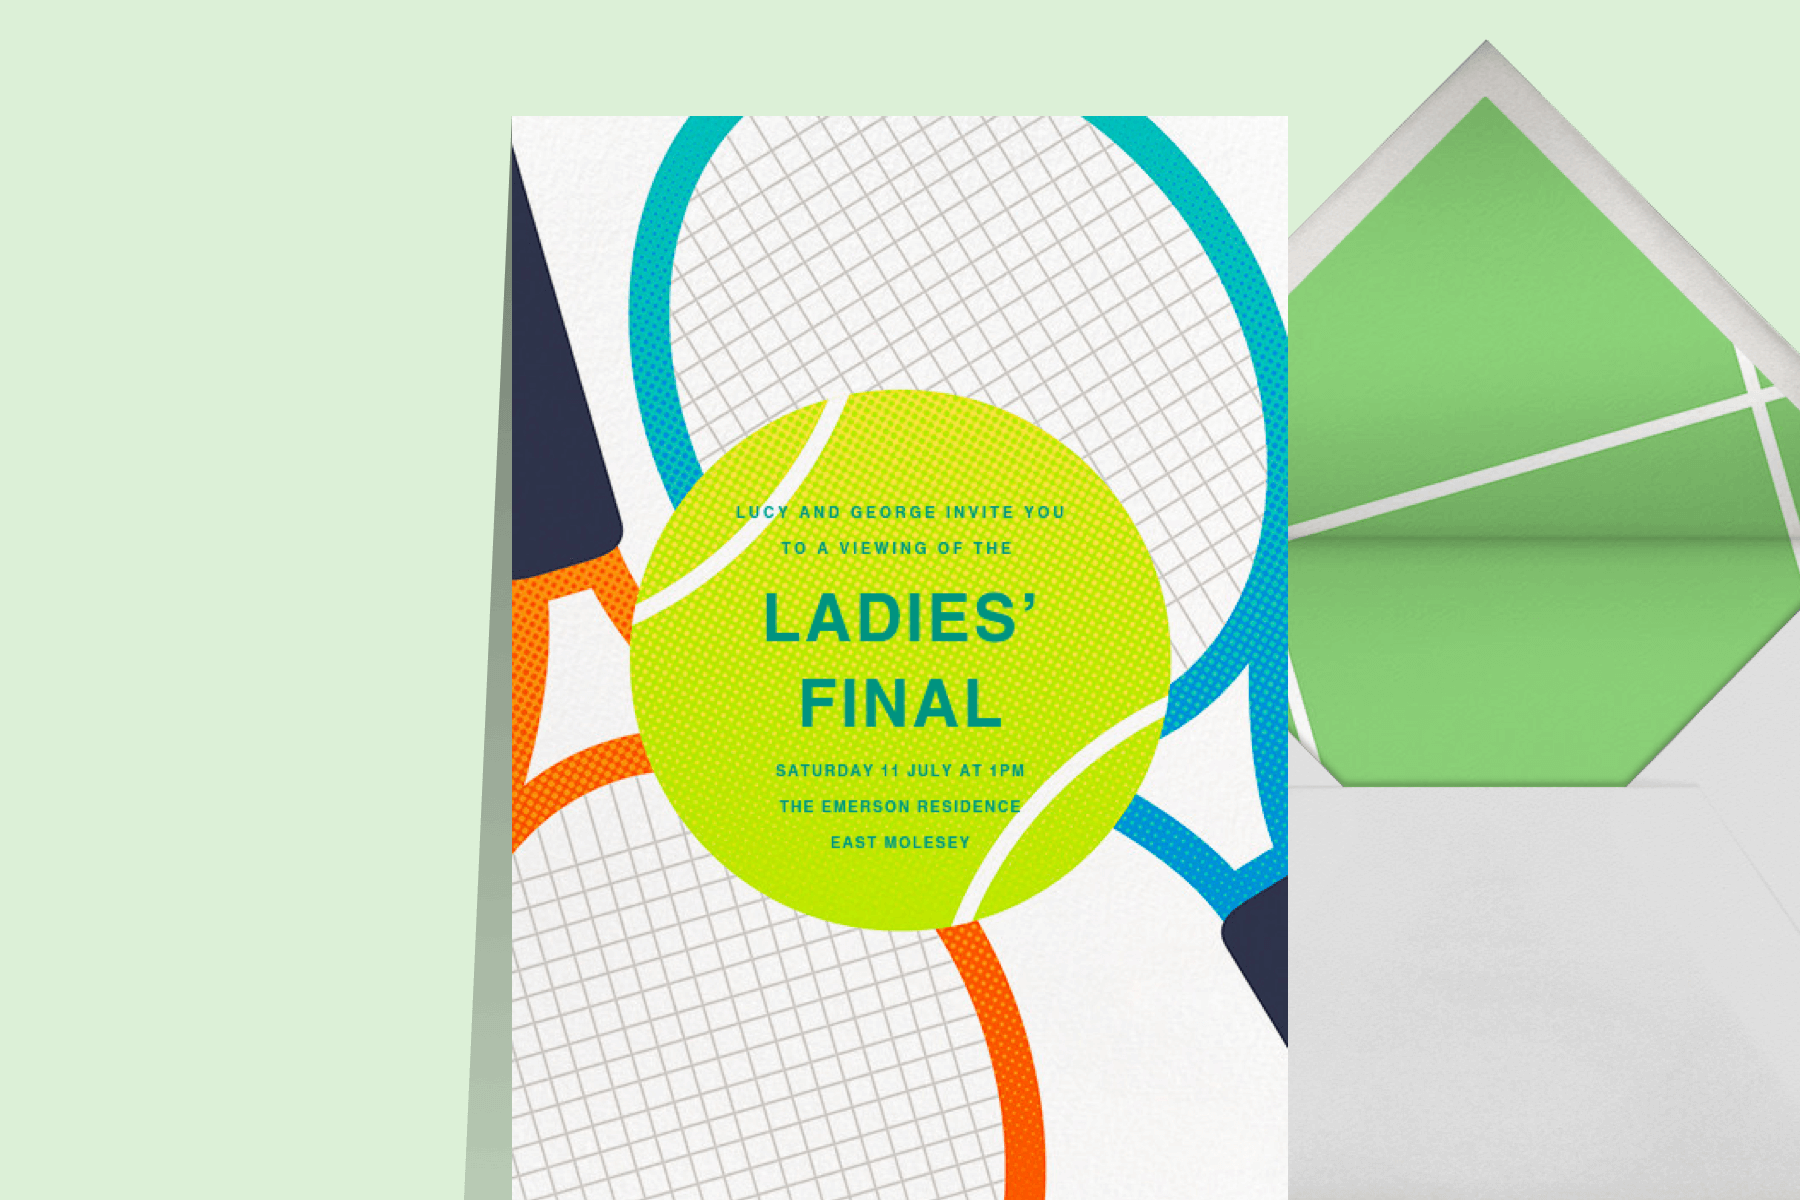 Ladies' Final tennis viewing party invitation from Paperless Post